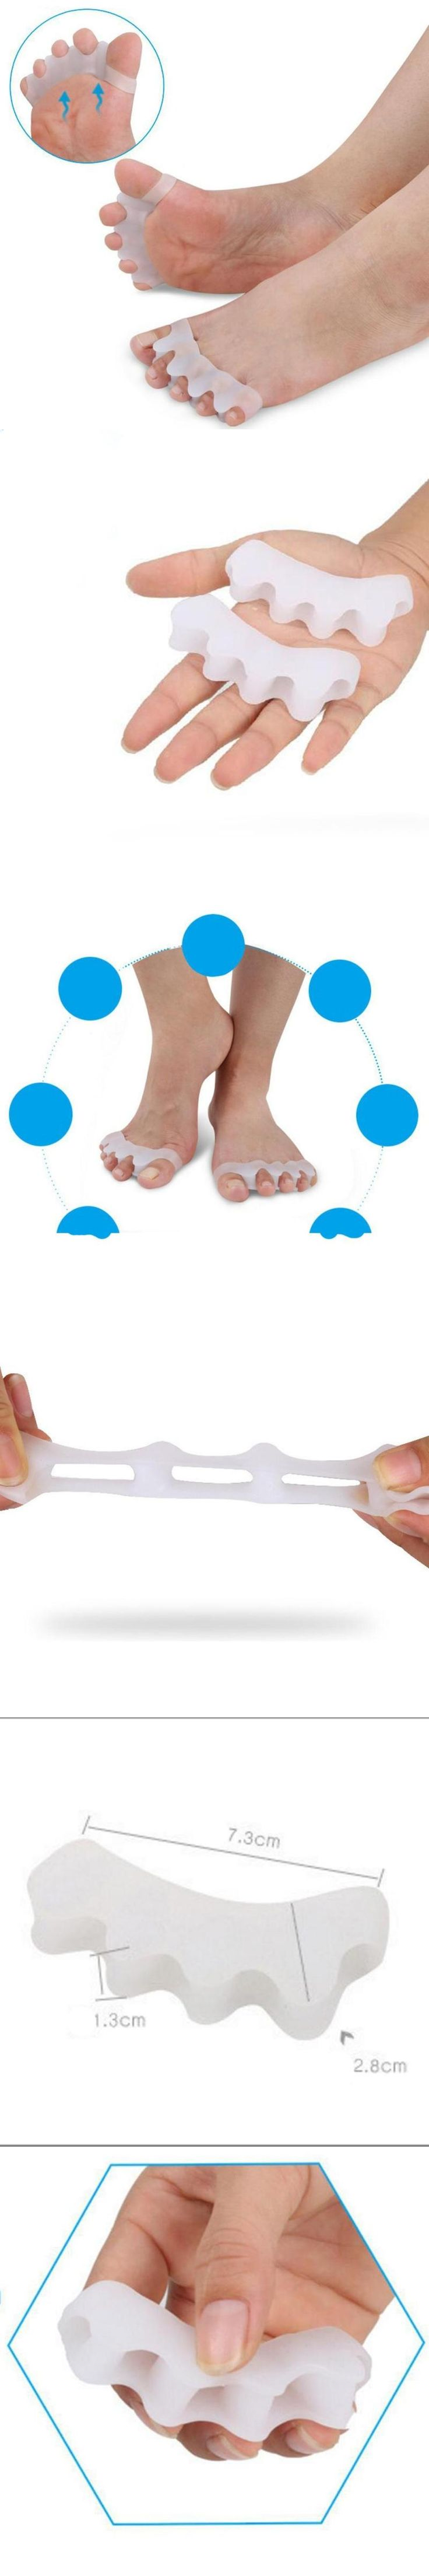 1Pair Silicone Toe Separators Feet Reusable Gel Toe Separators Alignment Overlapping Toes Orthotics Hammer Toes Tool A4